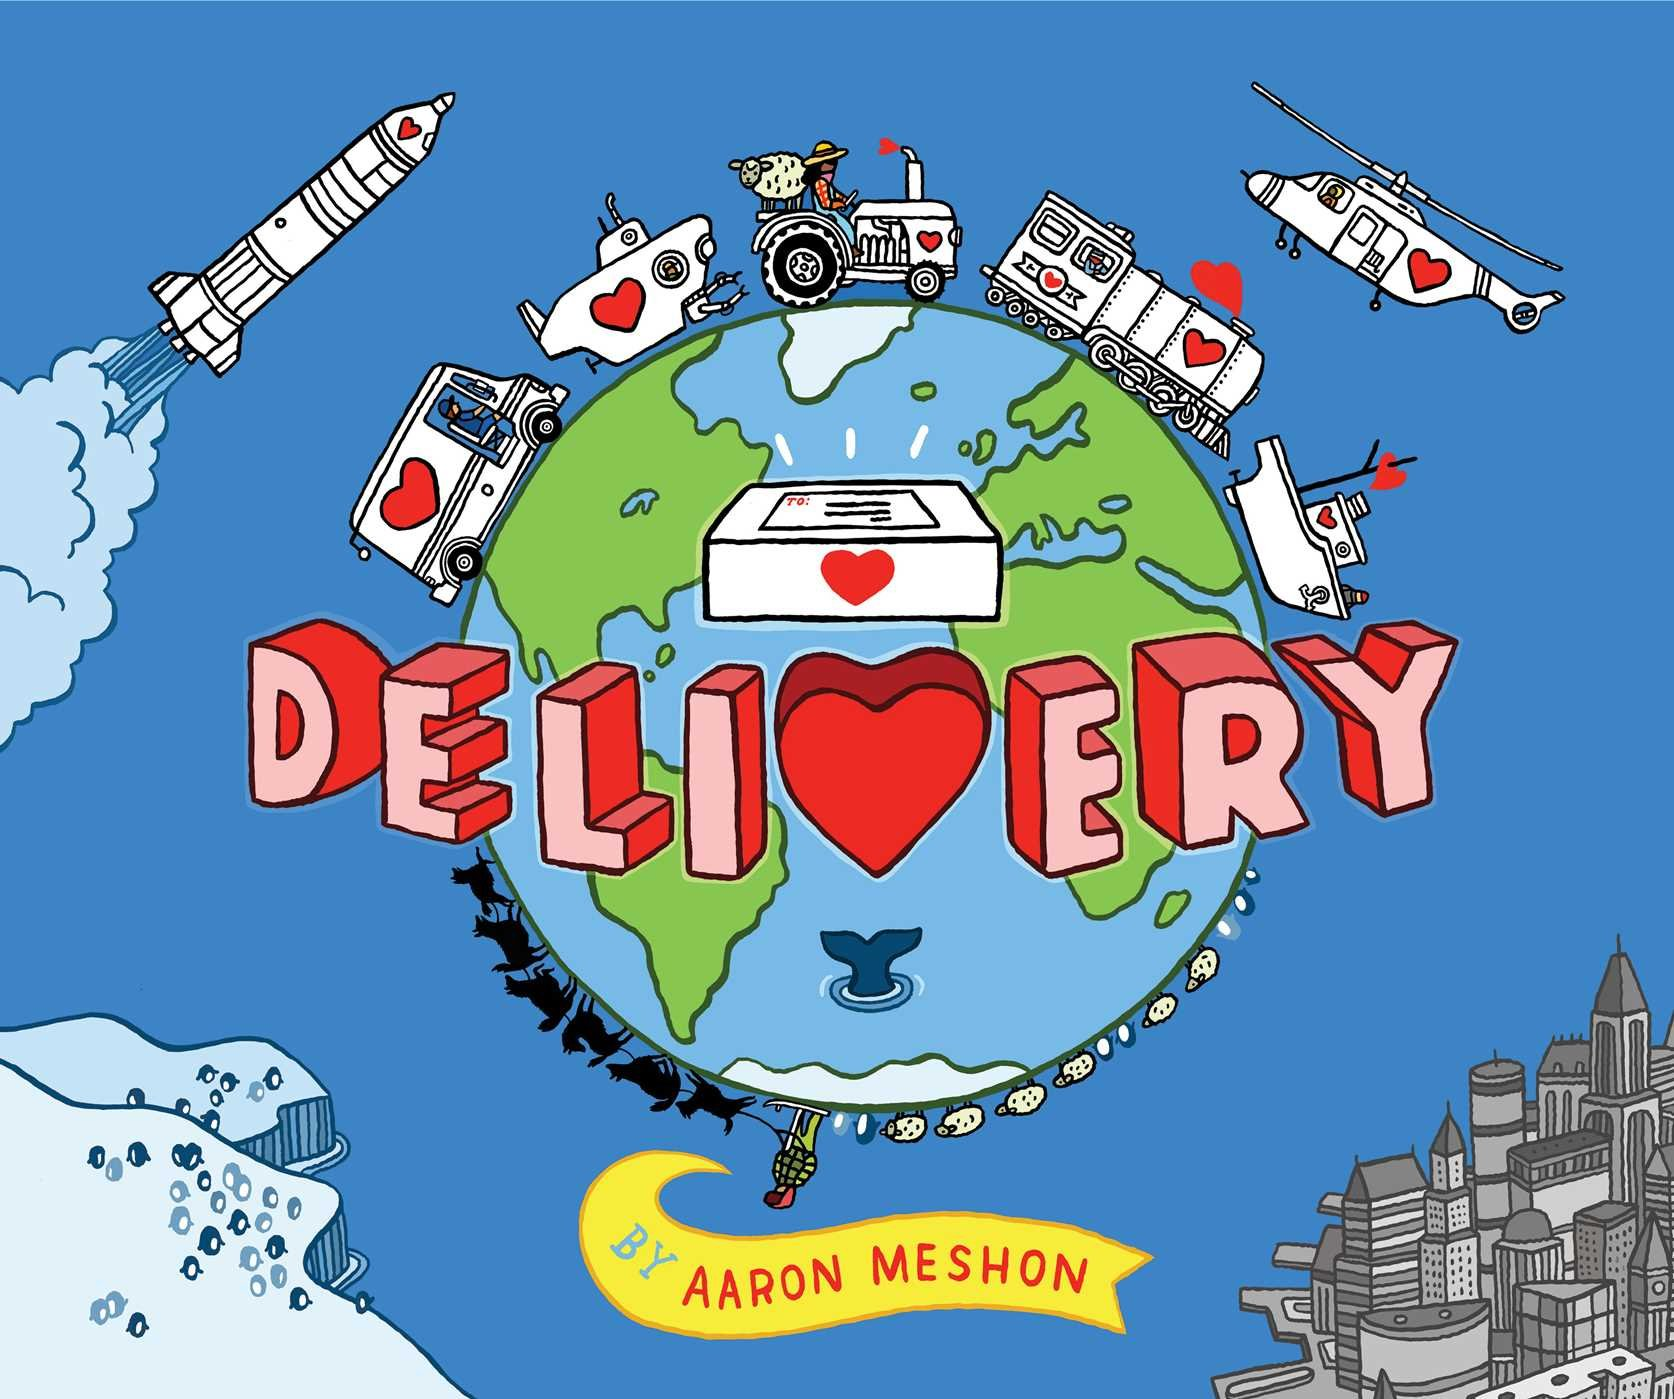 Delivery Aaron Meshon